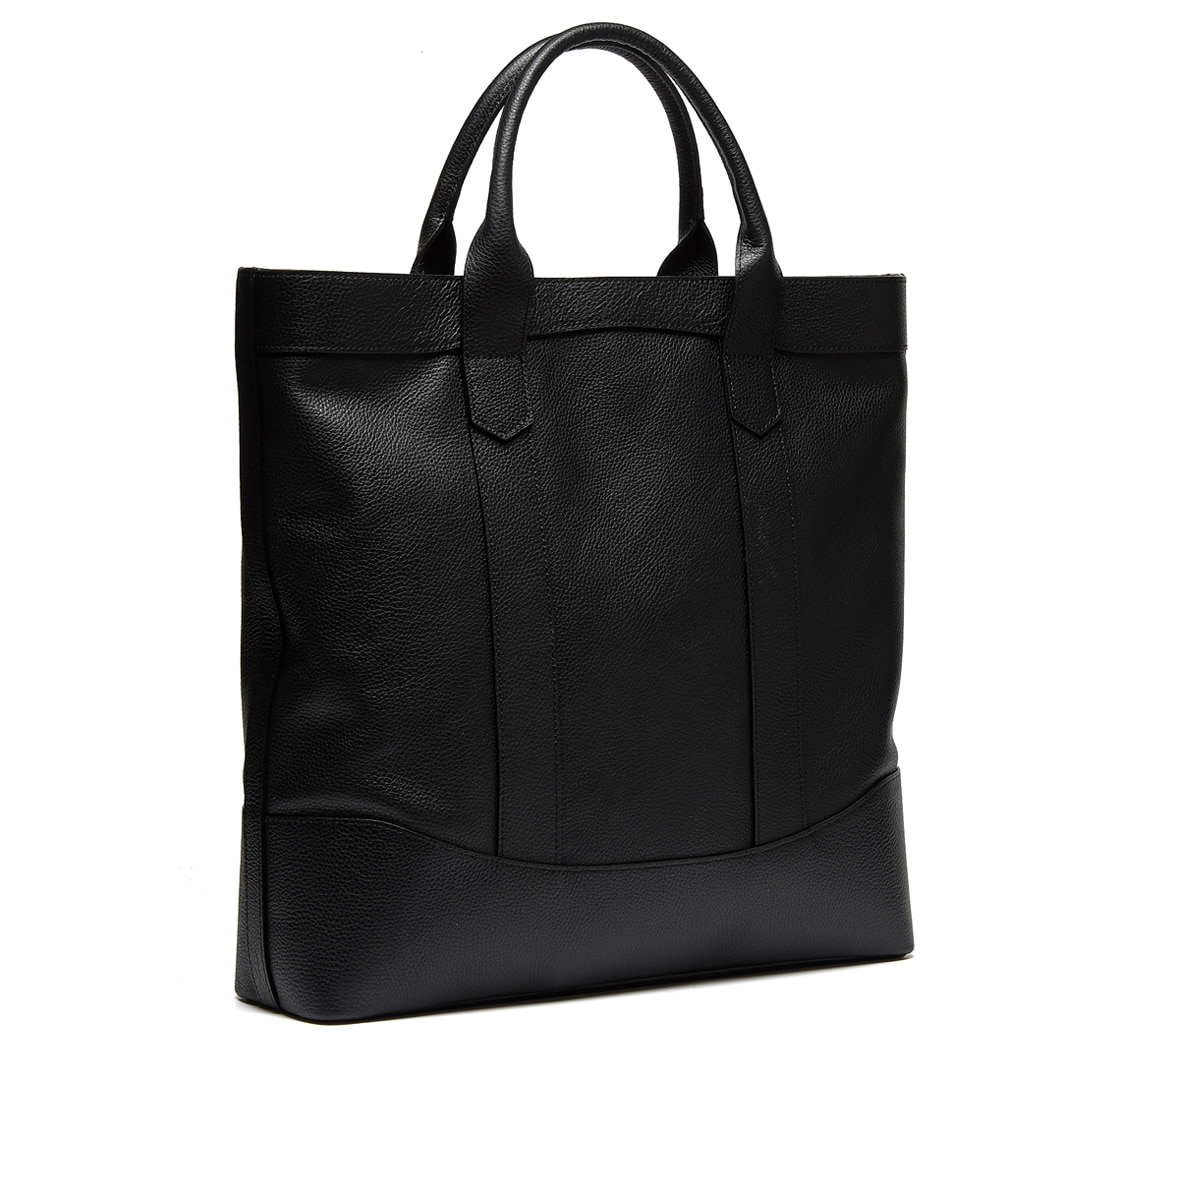 Black Shrunken Leather D.L Tote bag